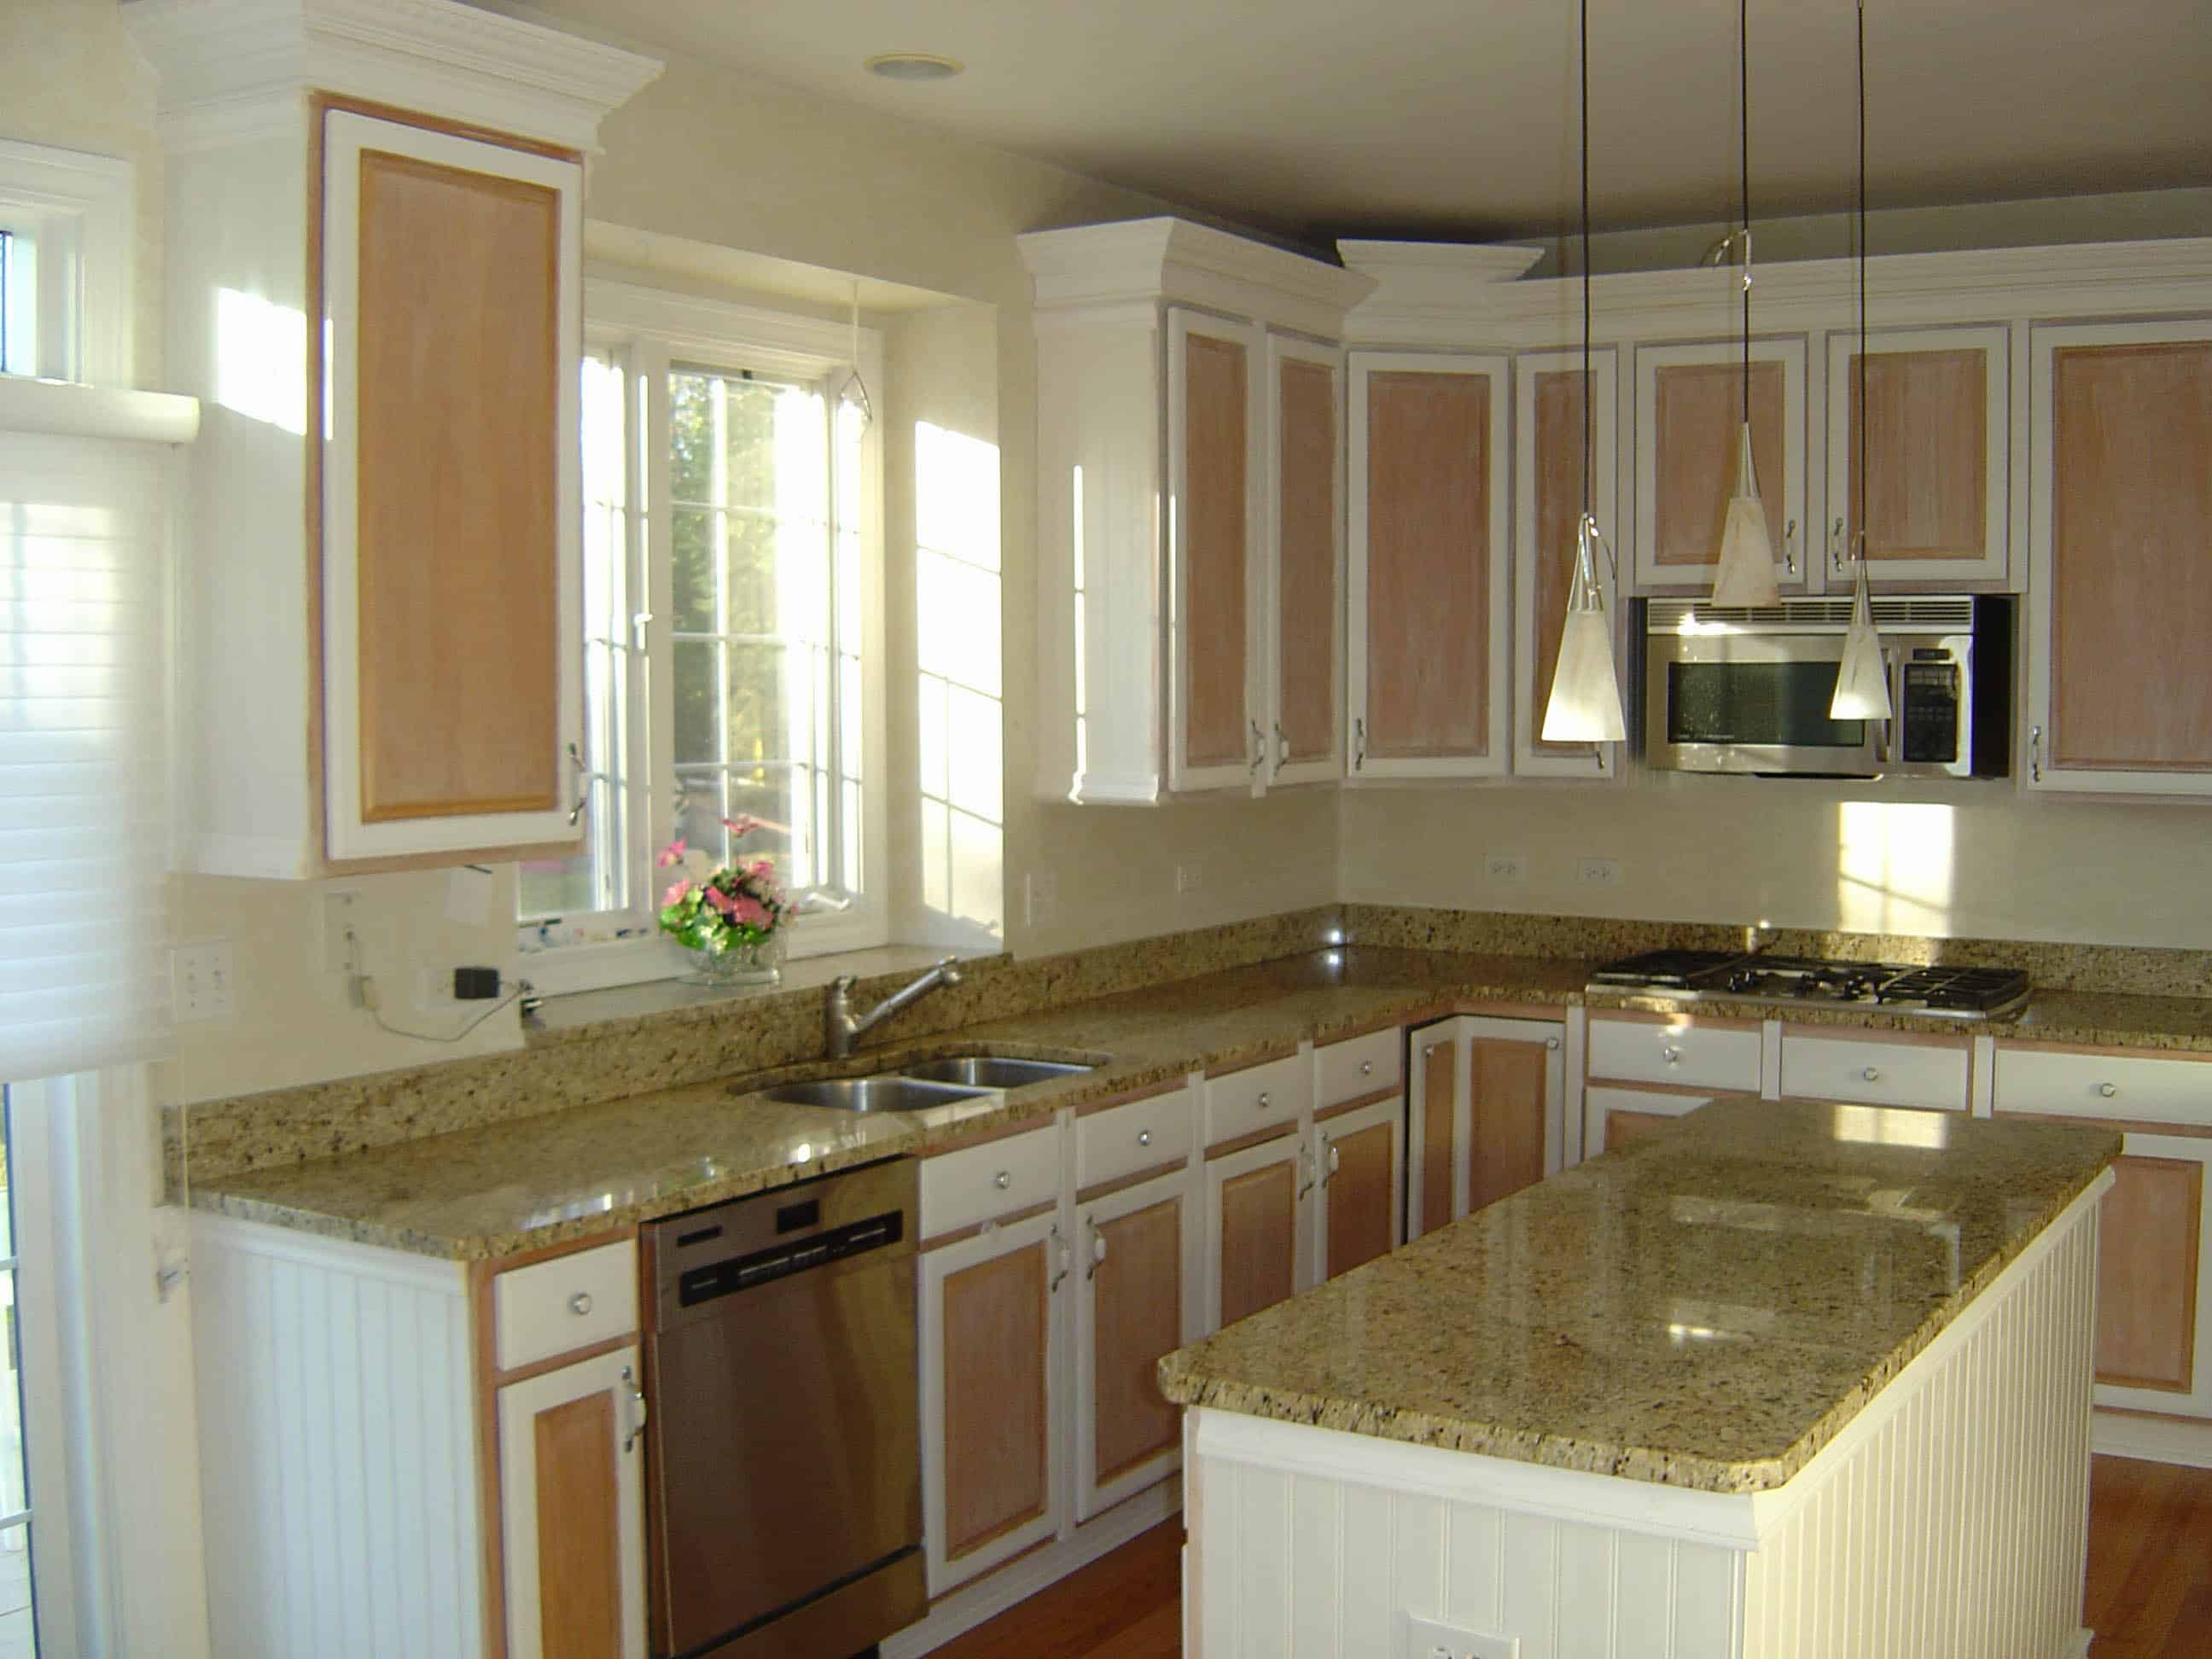 How Much Does It Cost To Reface Kitchen Cabinets? – The ...